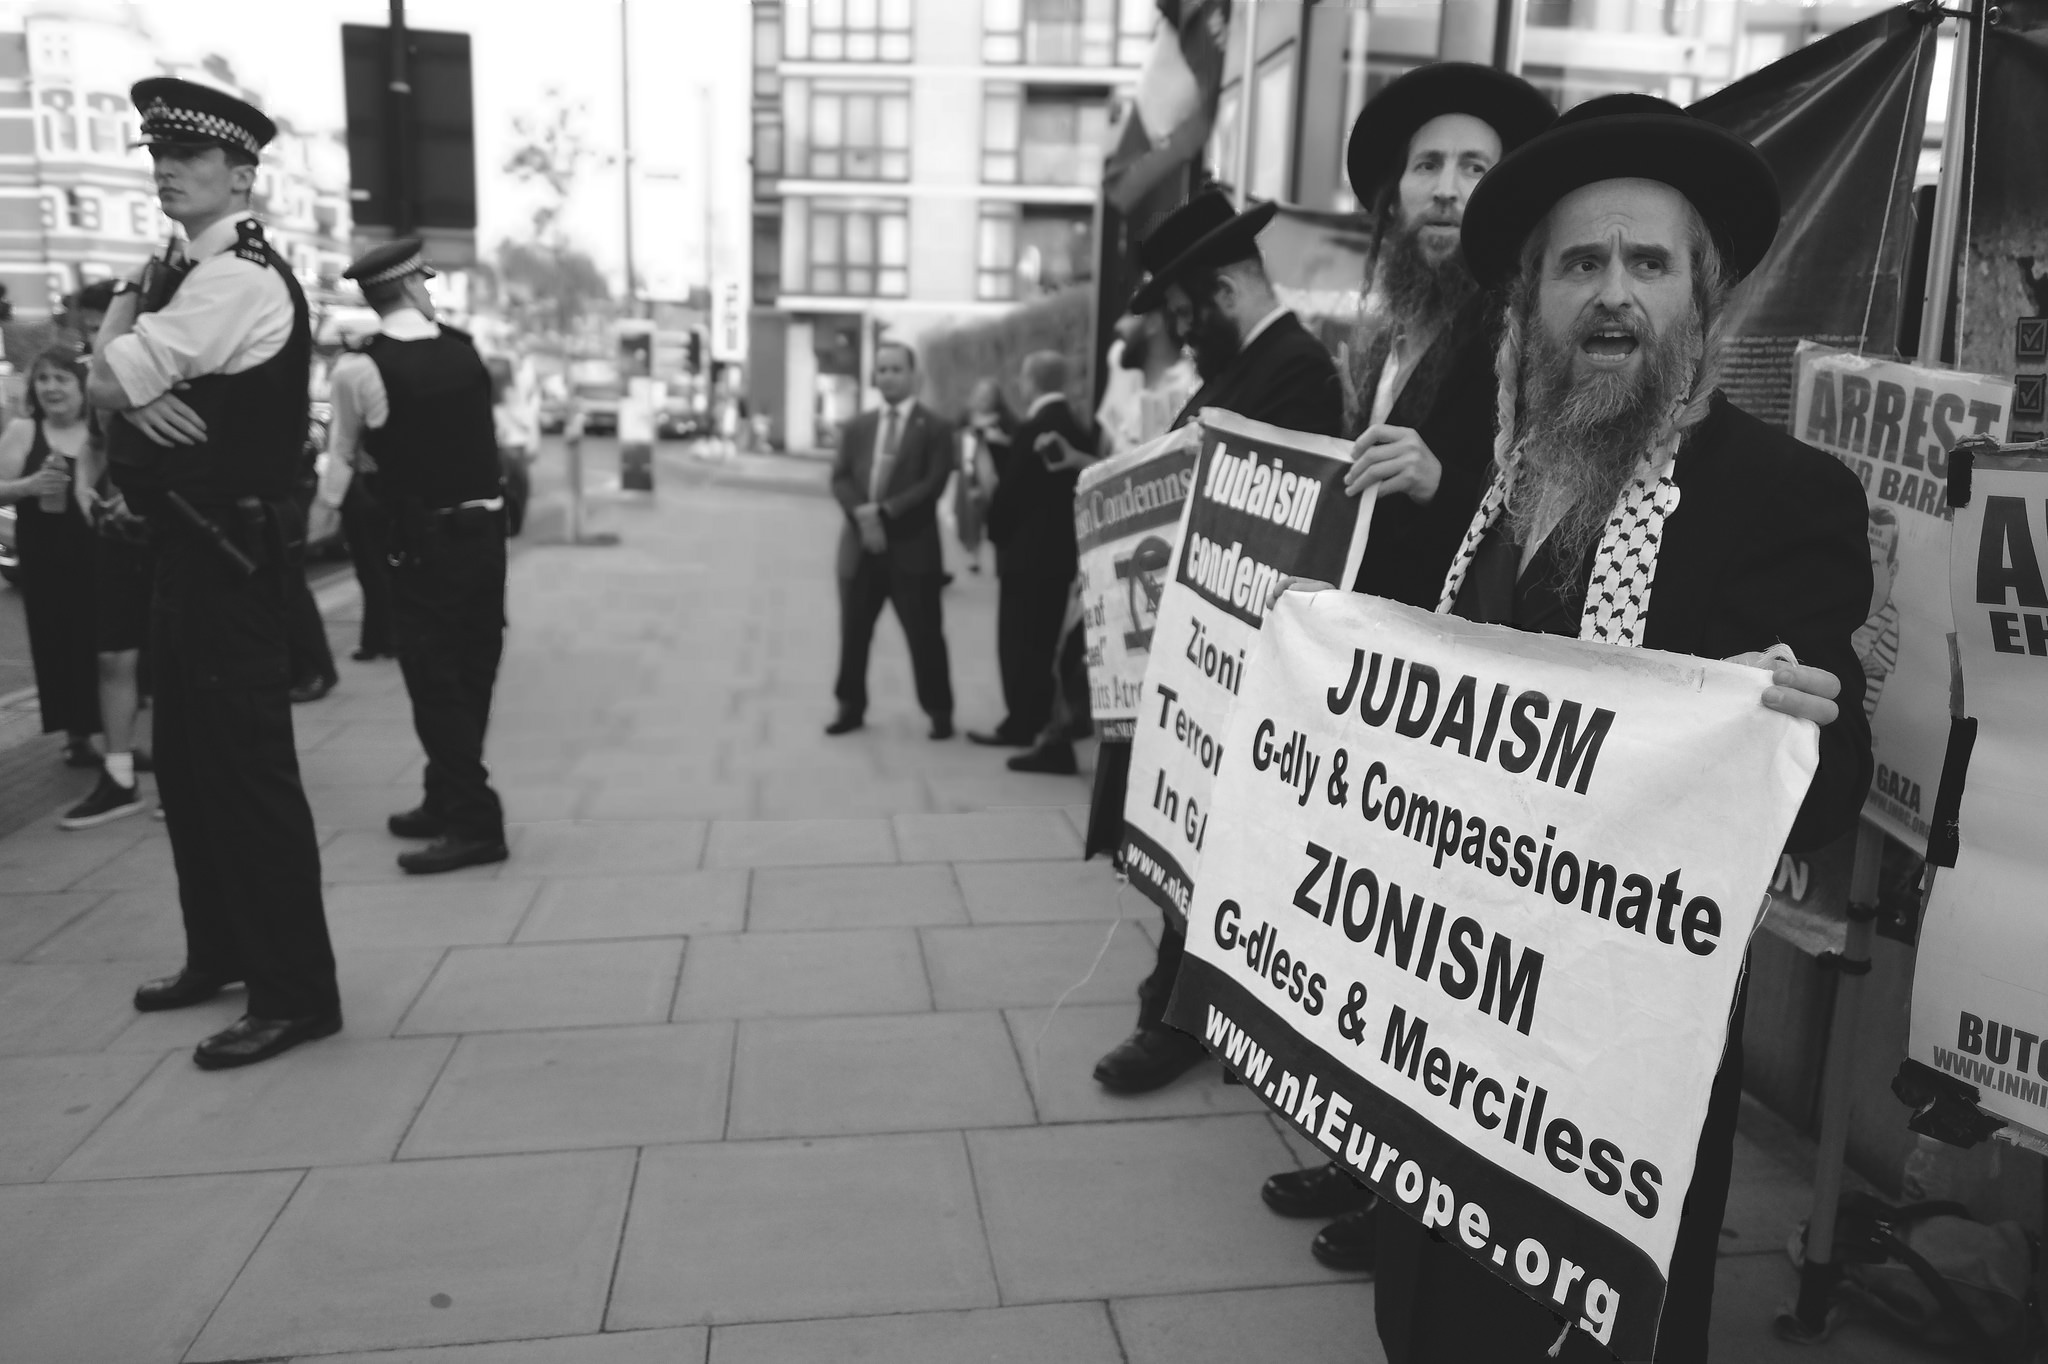 Orthodex Jews in London's pro-Palestine protests on Al Quds day, June 10, 2018. (Allsdare Hickson via Flickr)